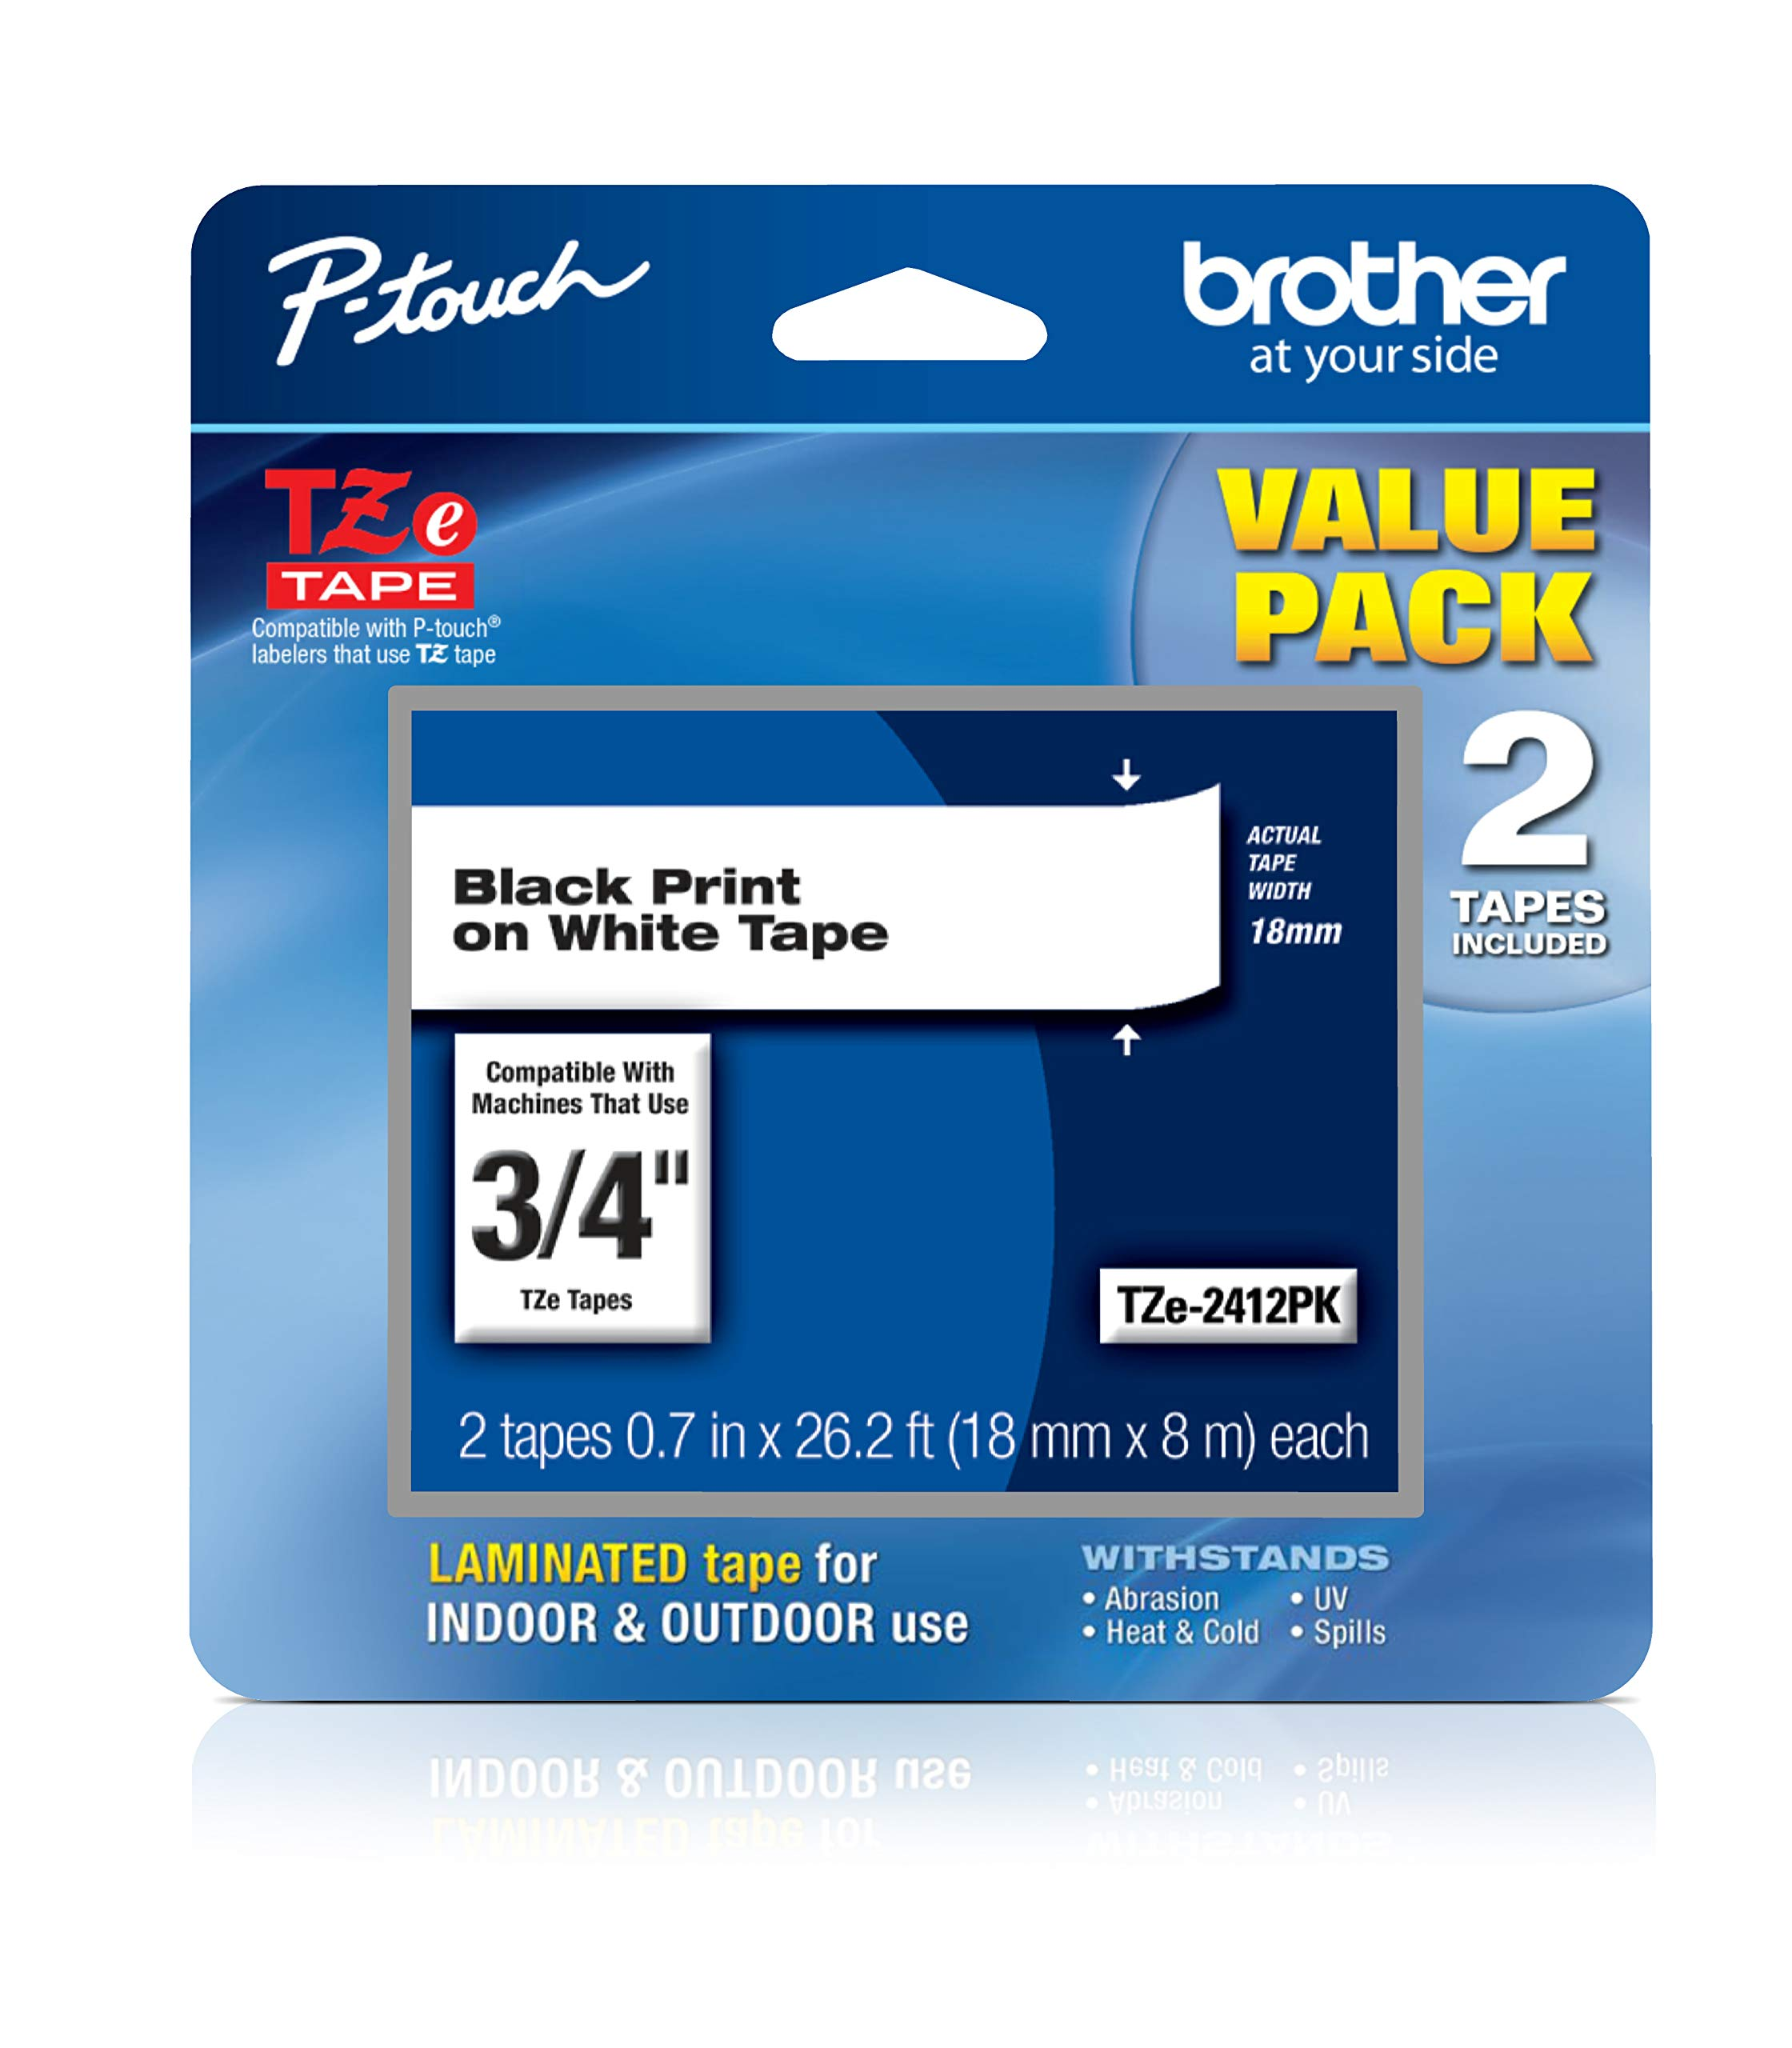 """Brother Genuine P-touch, TZe-2412PK Tape ~¾"""" (18mm) 2-Pack Laminated P-touch Tape, Black on White, Perfect for Indoor or Outdoor Use, Water Resistant, 26.2 ft. (8m)"""